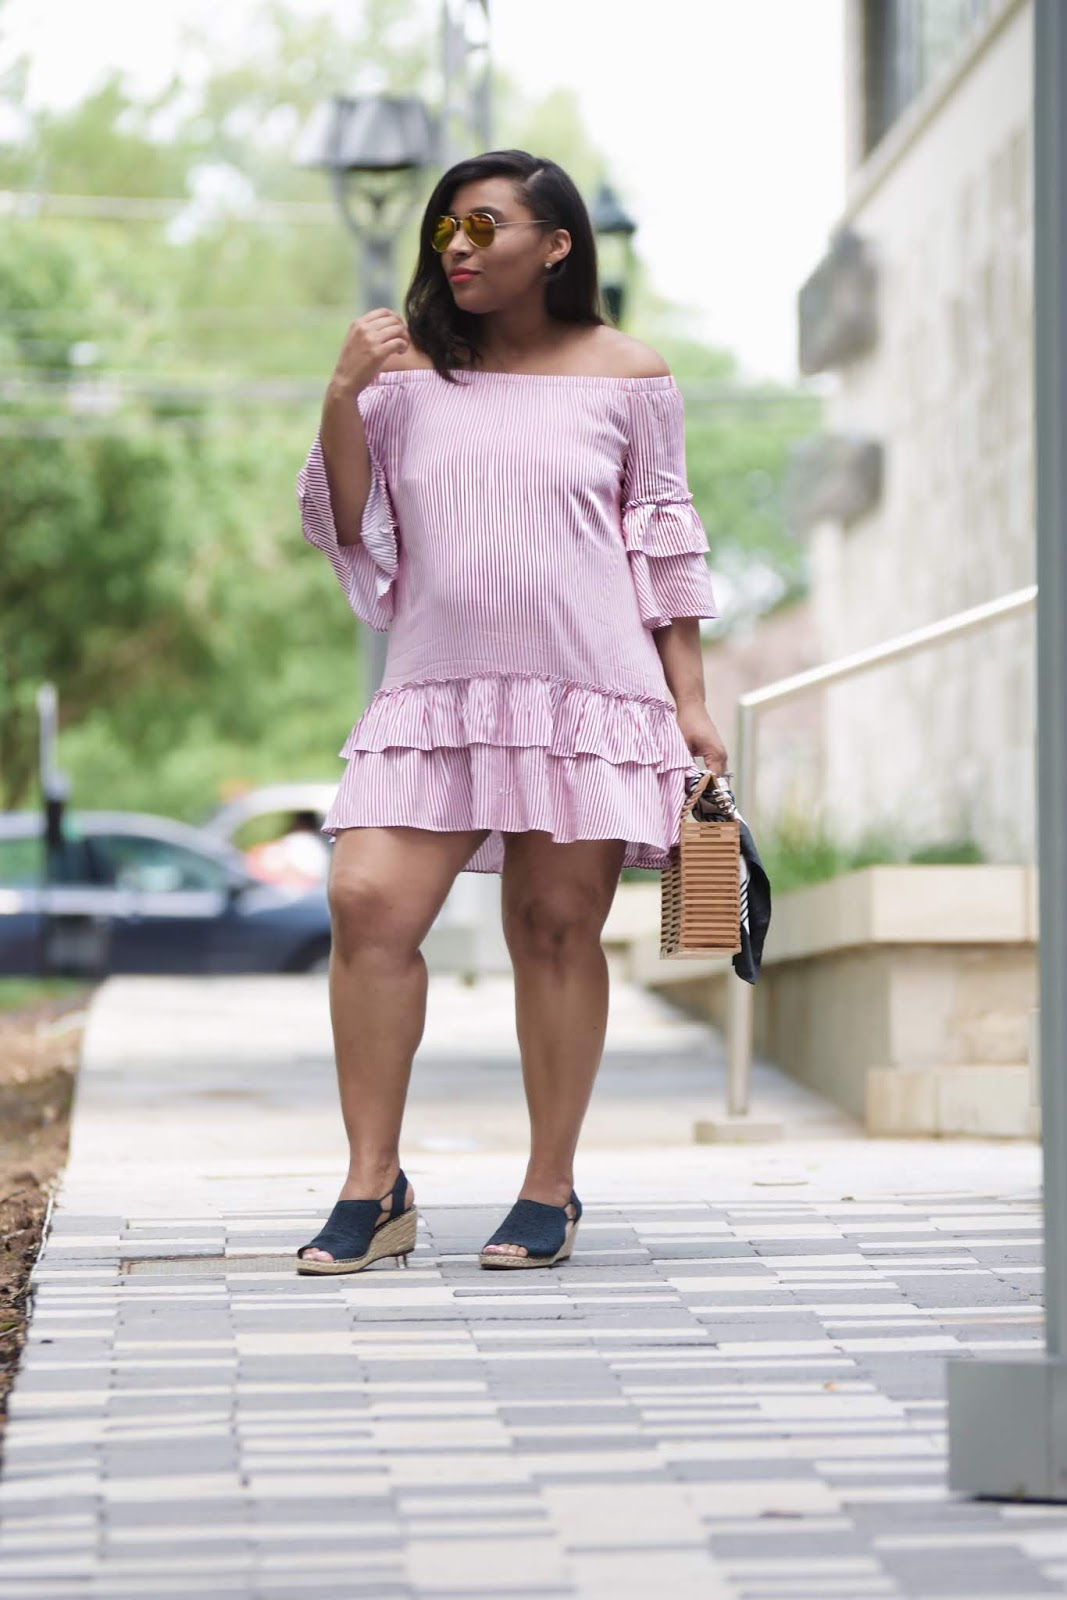 Summer Dresses For Every Budget, mom blogger, summer trends, summer dresses, summer looks, pregnant in heels, ruffle dress